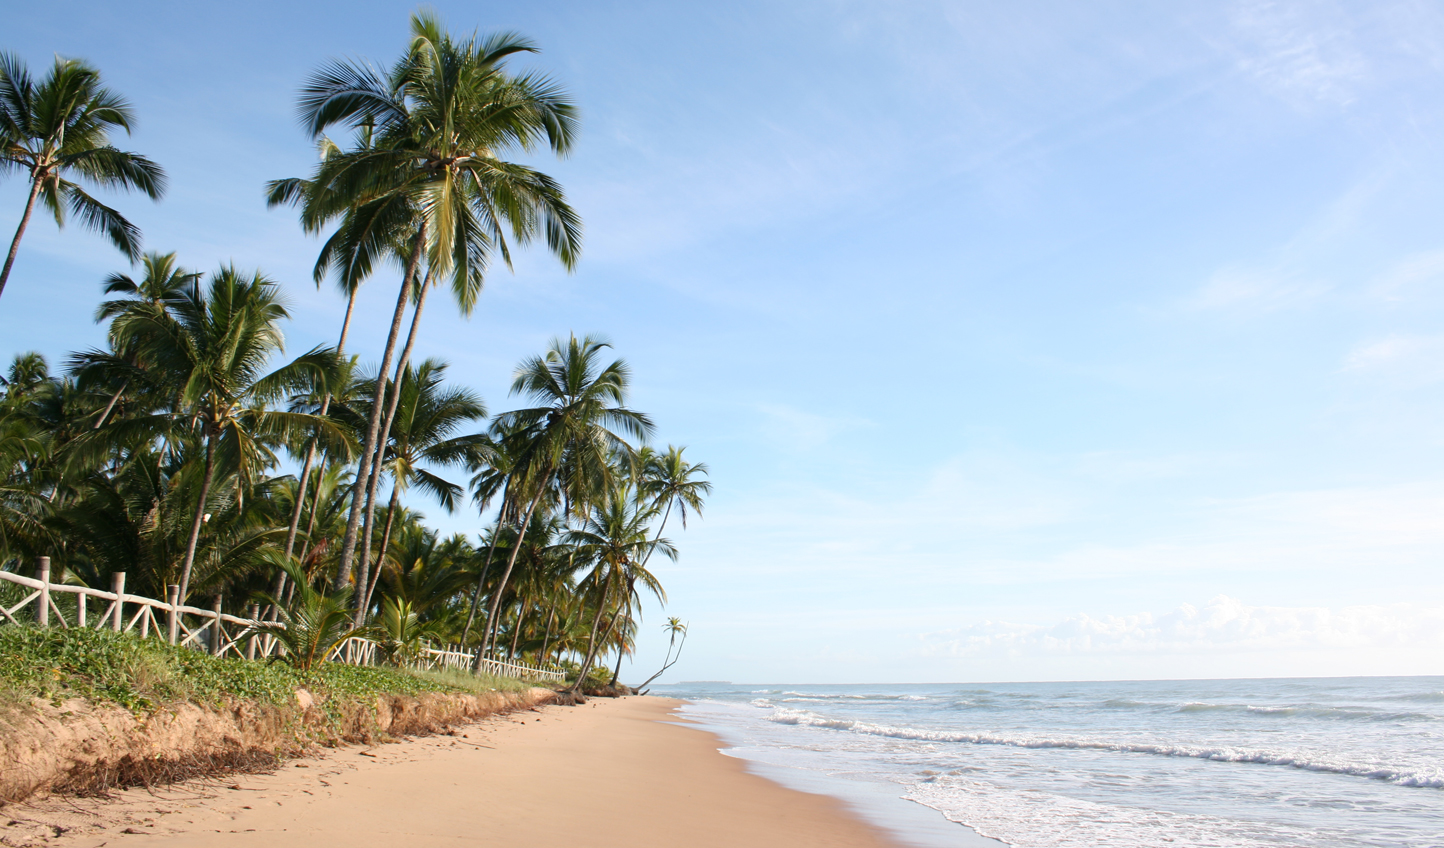 Settle down on the beaches of Bahia